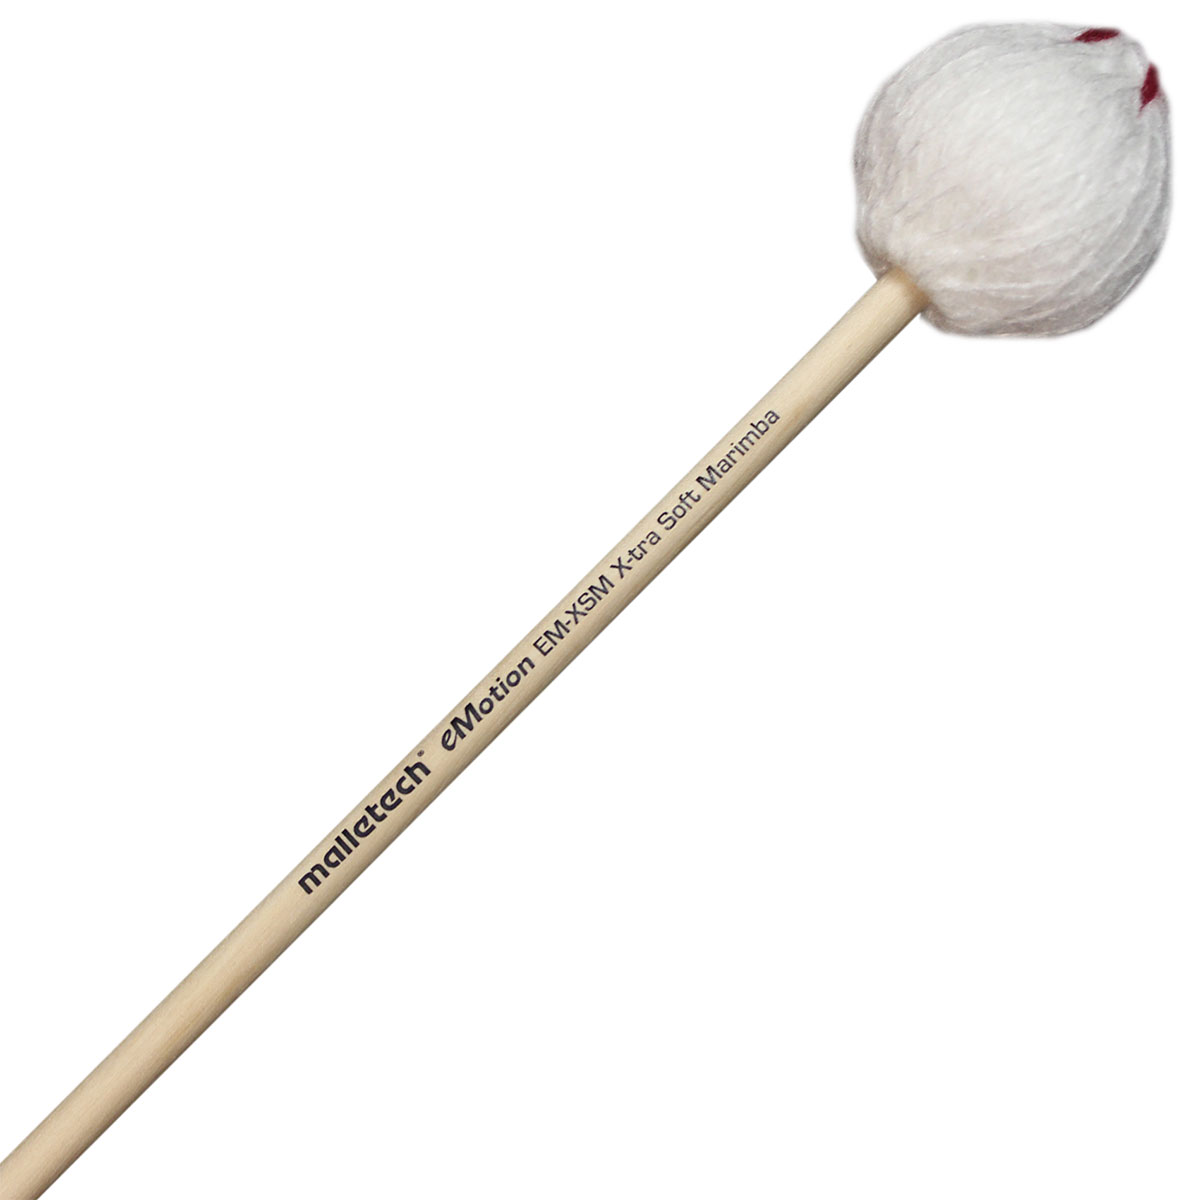 Malletech eMotion Series Extra-Soft Marimba Mallets